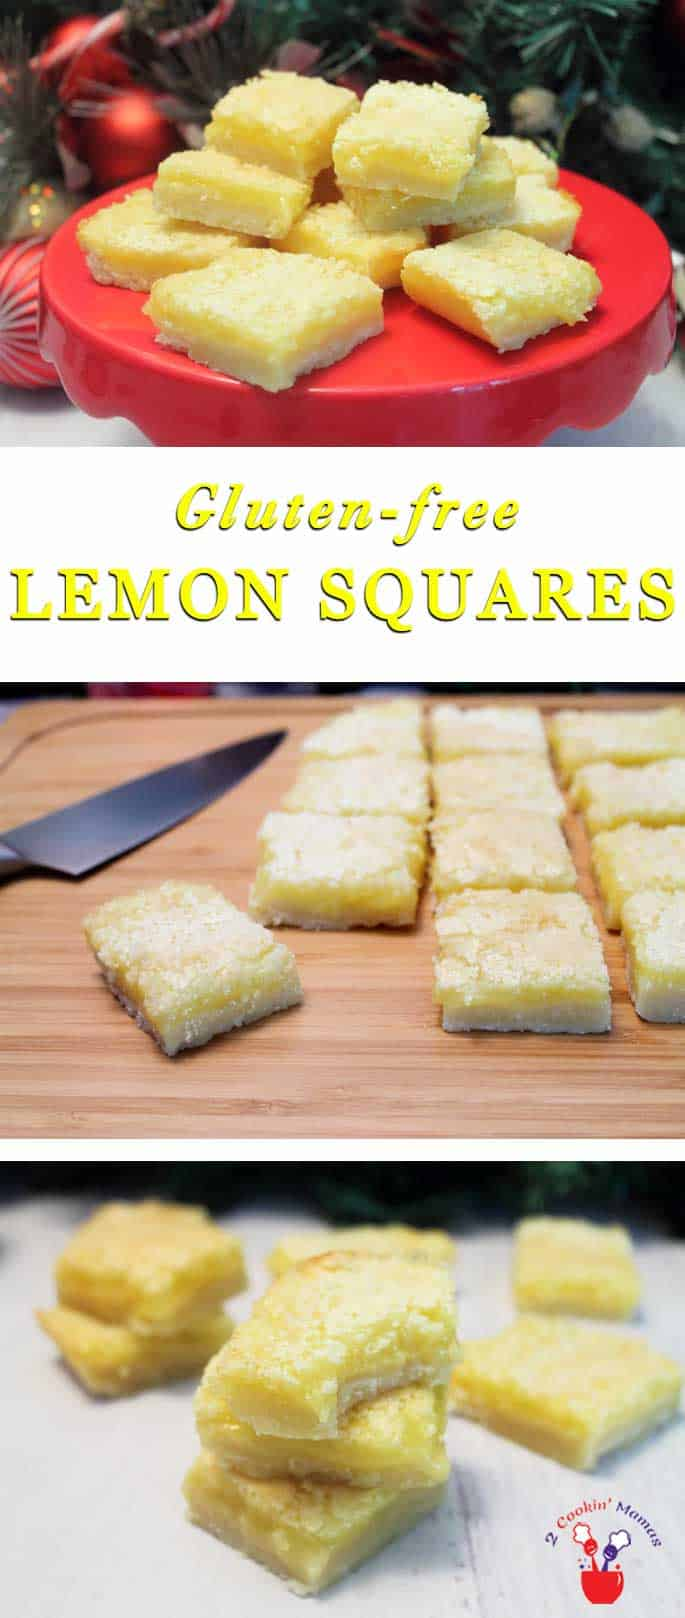 Lemon squares on cake stand & cut bars on wooden board with text overlay stating Gluten Free Lemon Squares.